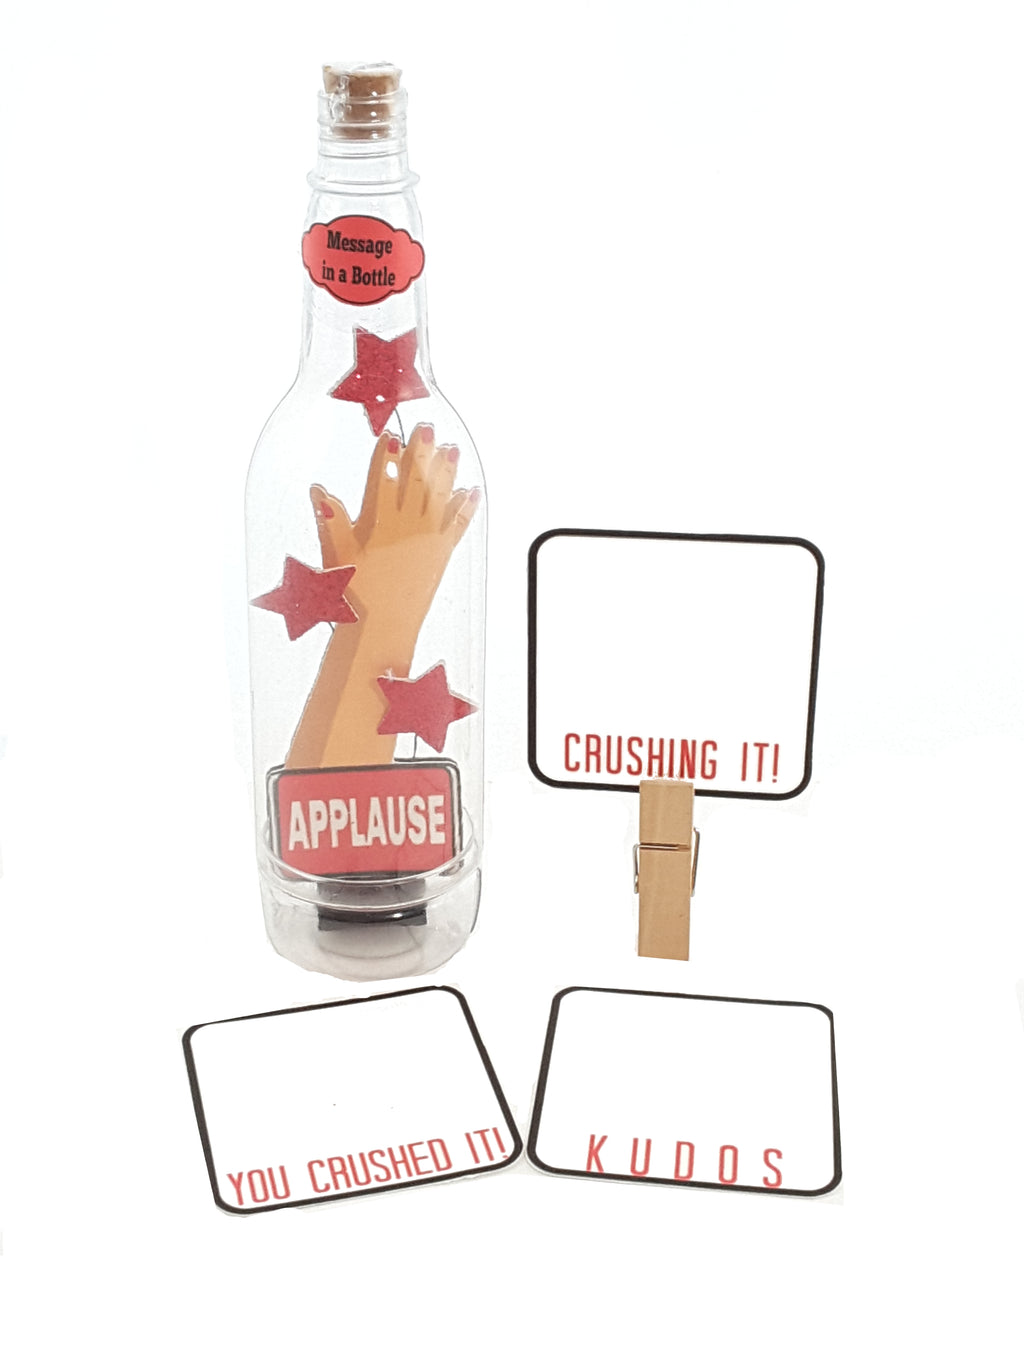 Personalized Message in a Bottle featuring Applause - Crushing it! - TheLastWordBish.com